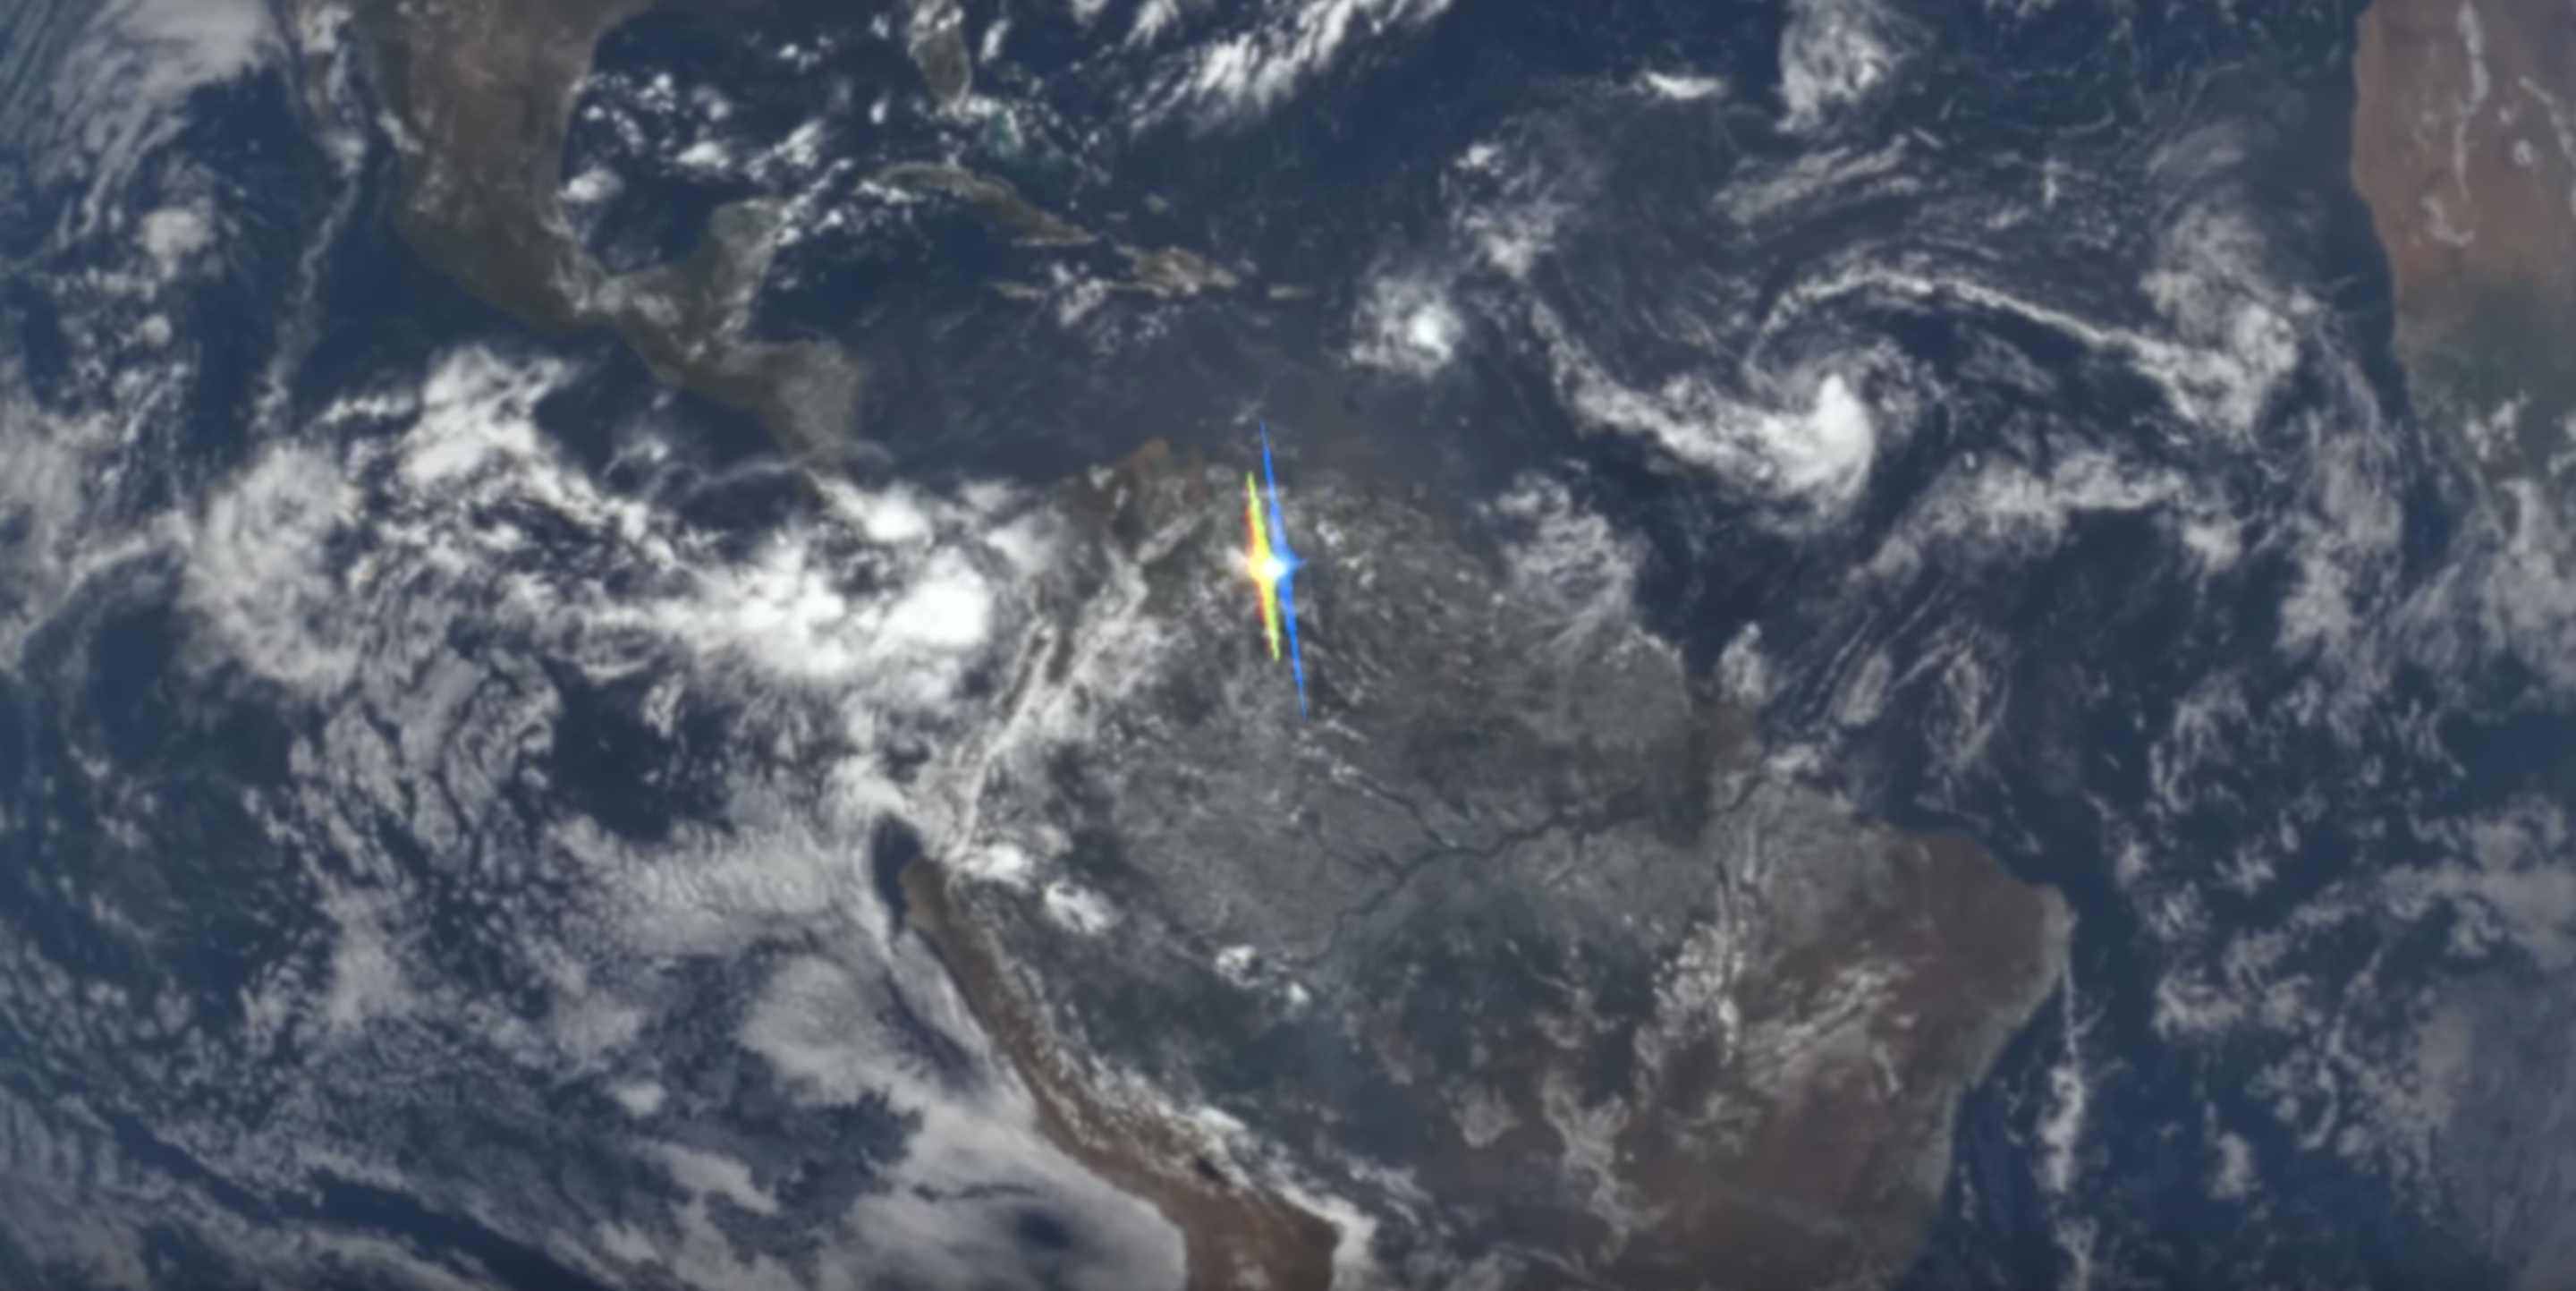 NASA Notices Unexpected Flashes of Light Reflecting Off Earth